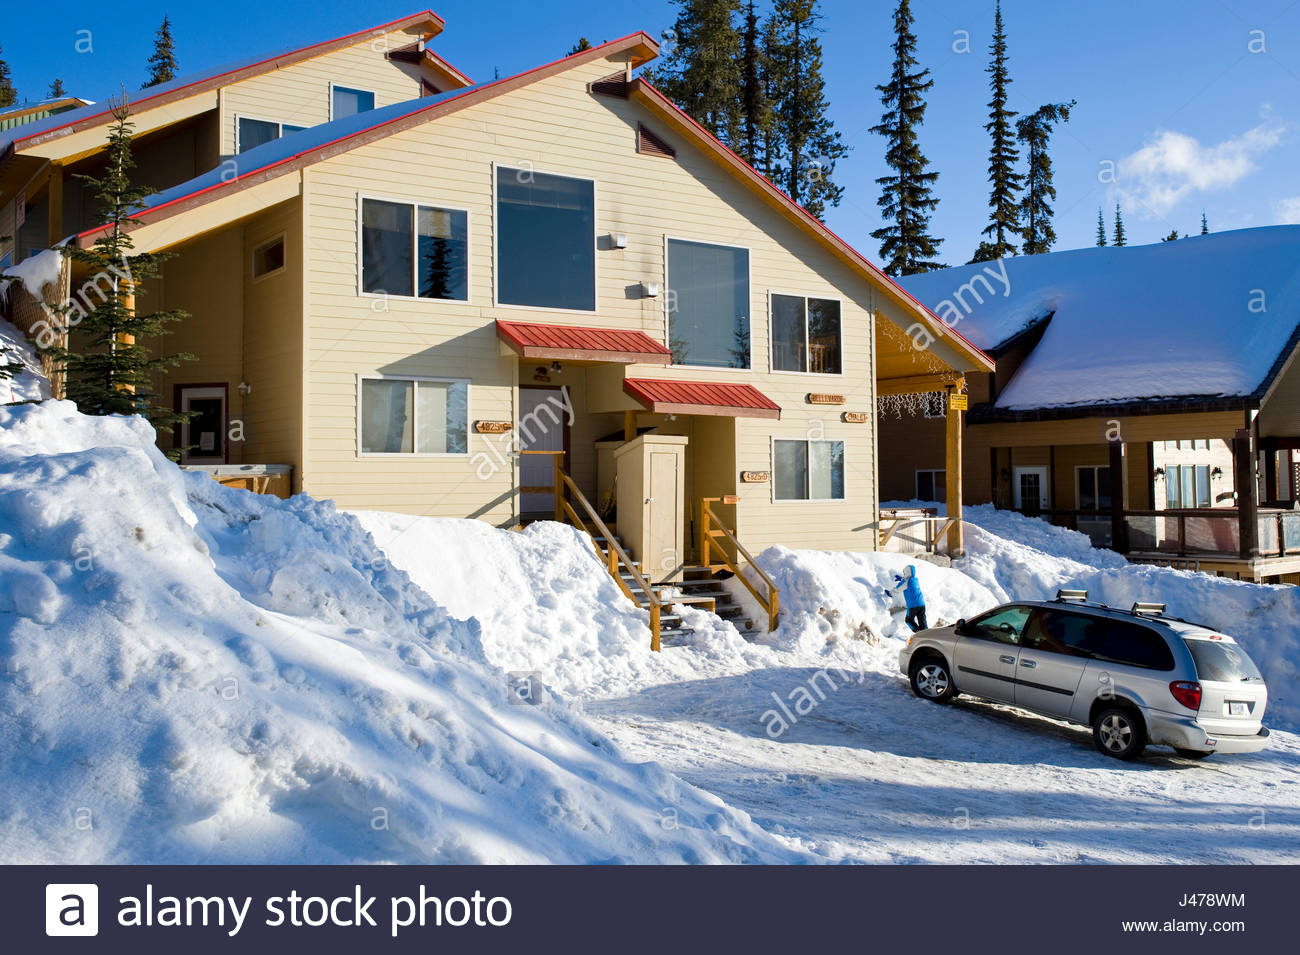 Snow covered homes along lower snow pines road big white british columbia canada